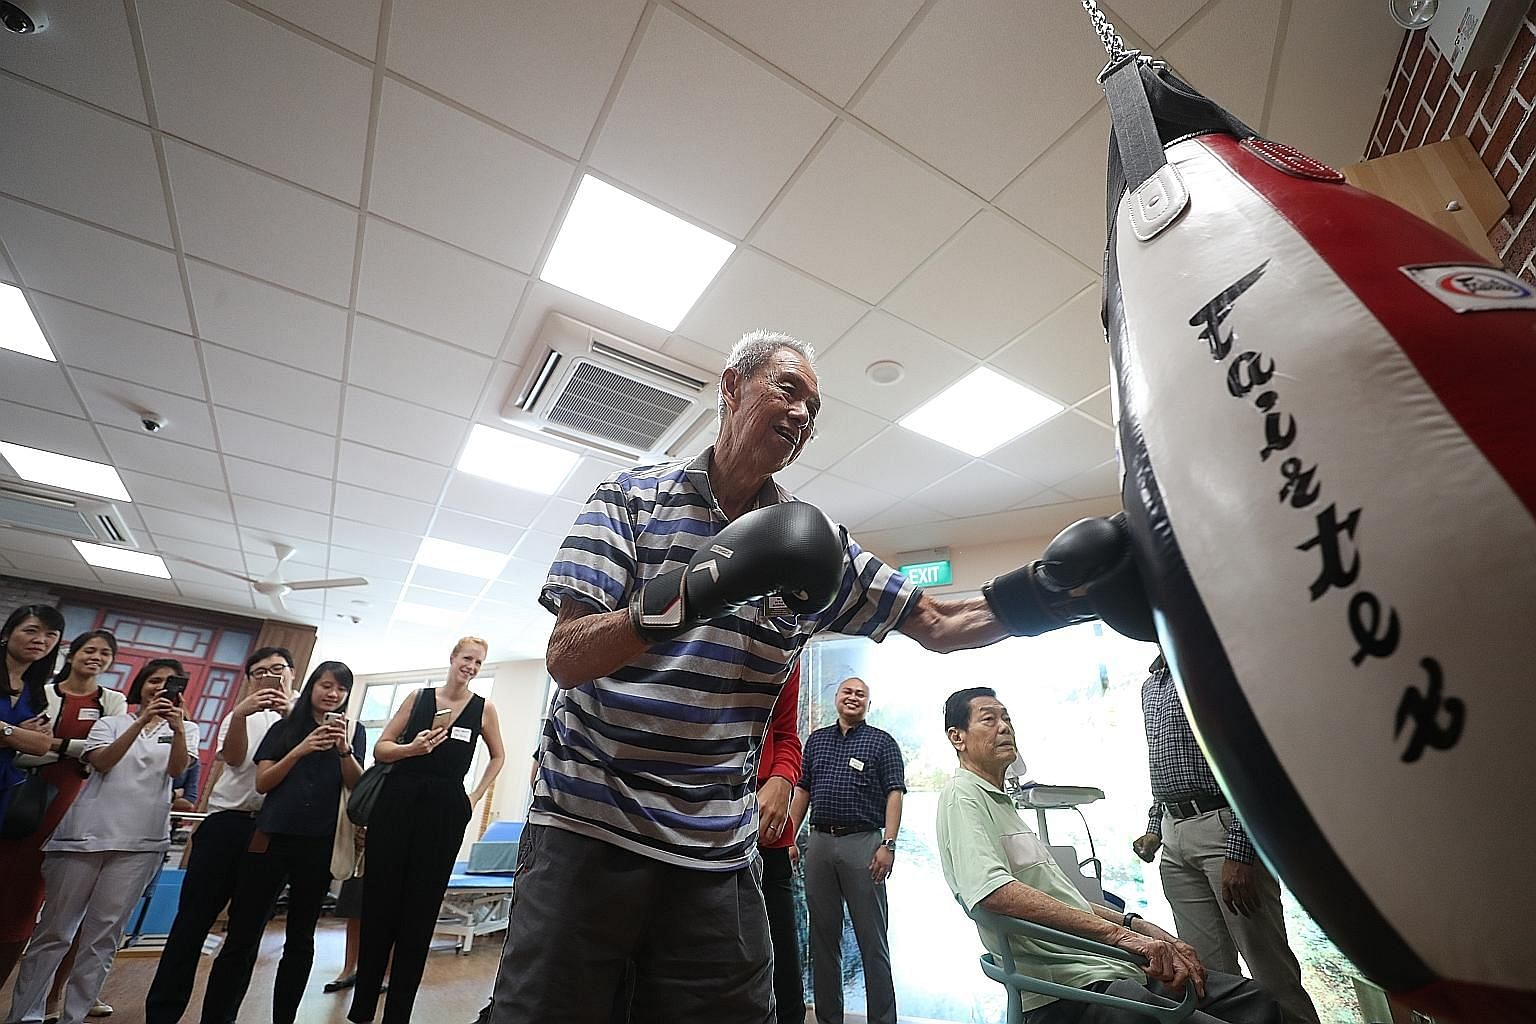 Mr Ho Ah Eng throwing punches at a punching bag at the Telok Blangah Senior Care Centre's rehab gym. Mr Ho, 81, who has an unsteady gait and lower-limb injury, says the weekly boxing classes at the centre have helped improve his balance and strength.